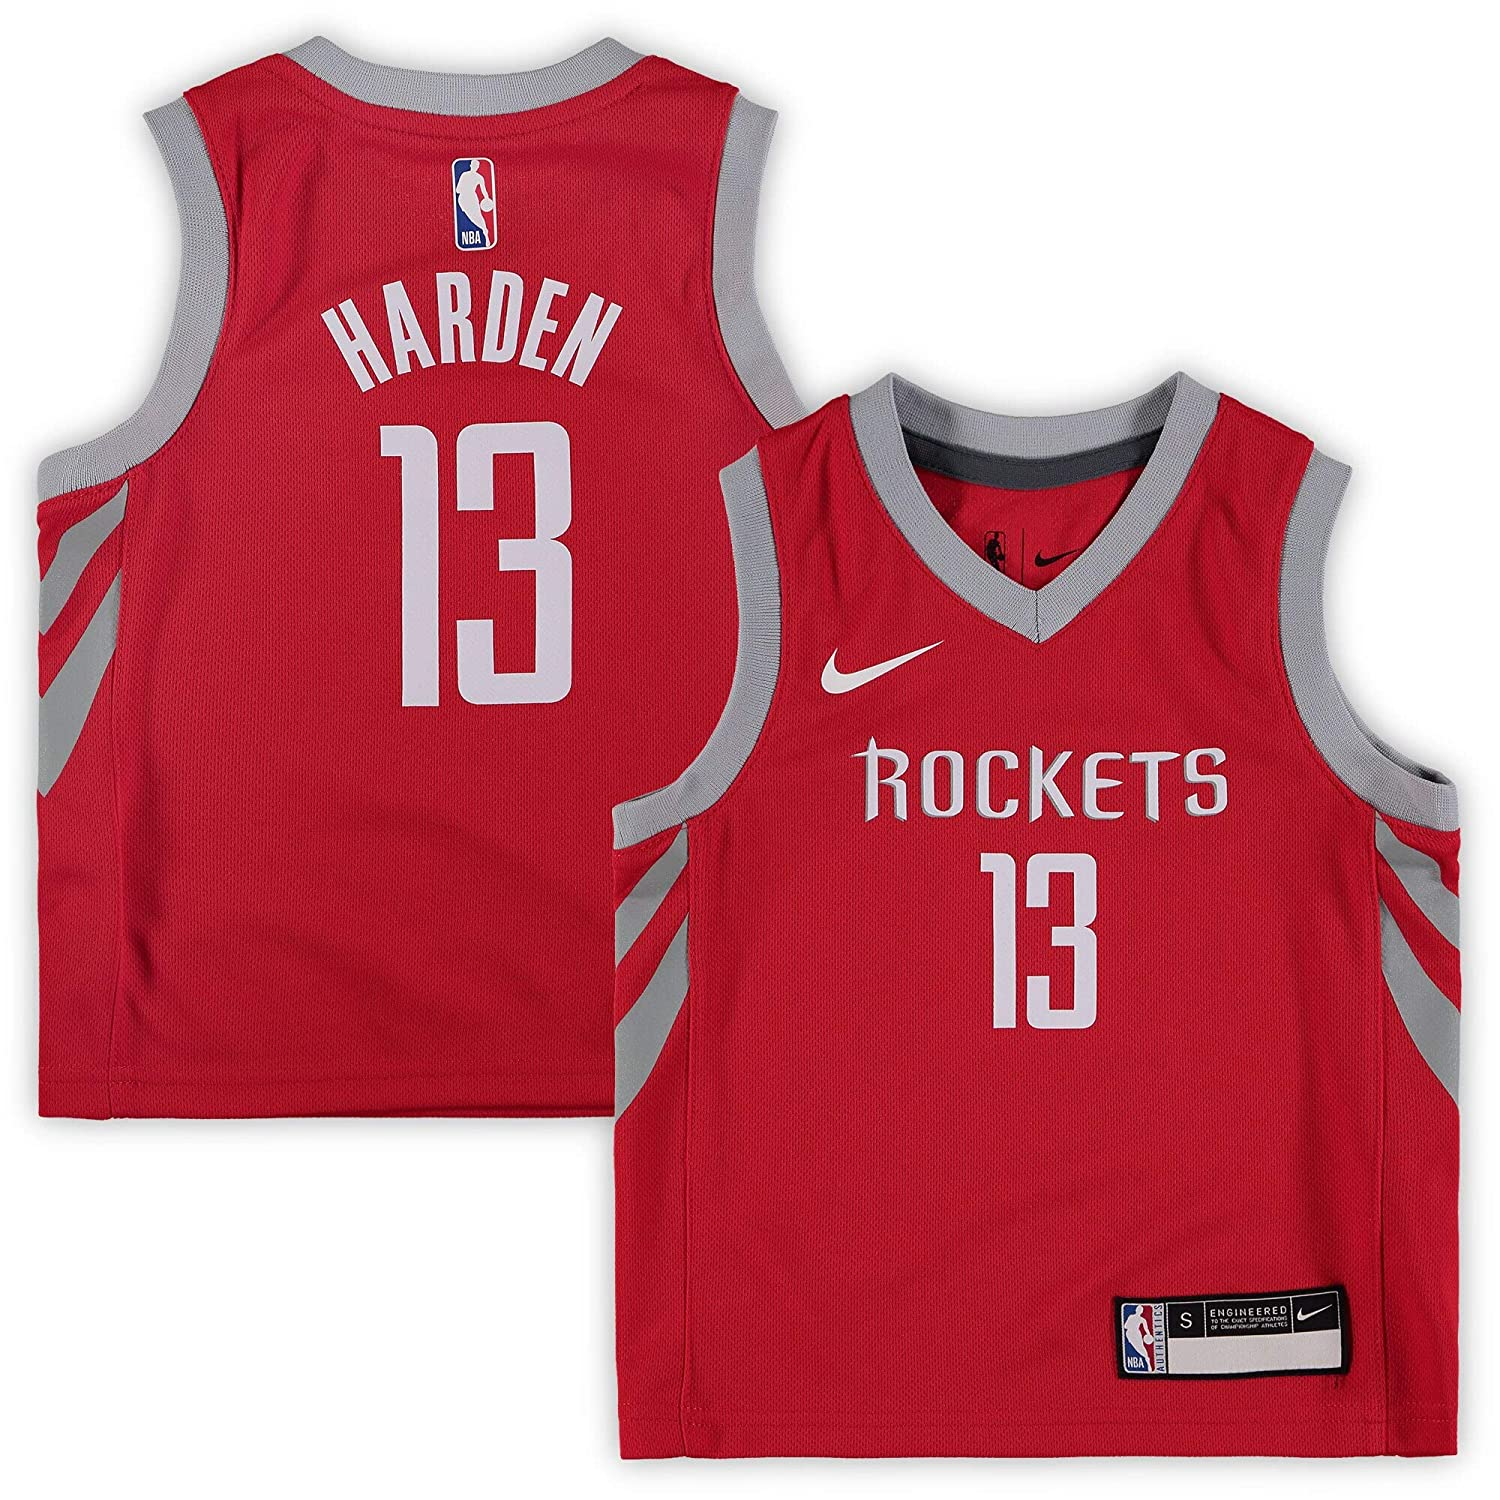 quality design ad29d 9d537 Amazon.com : Nike James Harden Houston Rockets NBA Toddler 2 ...